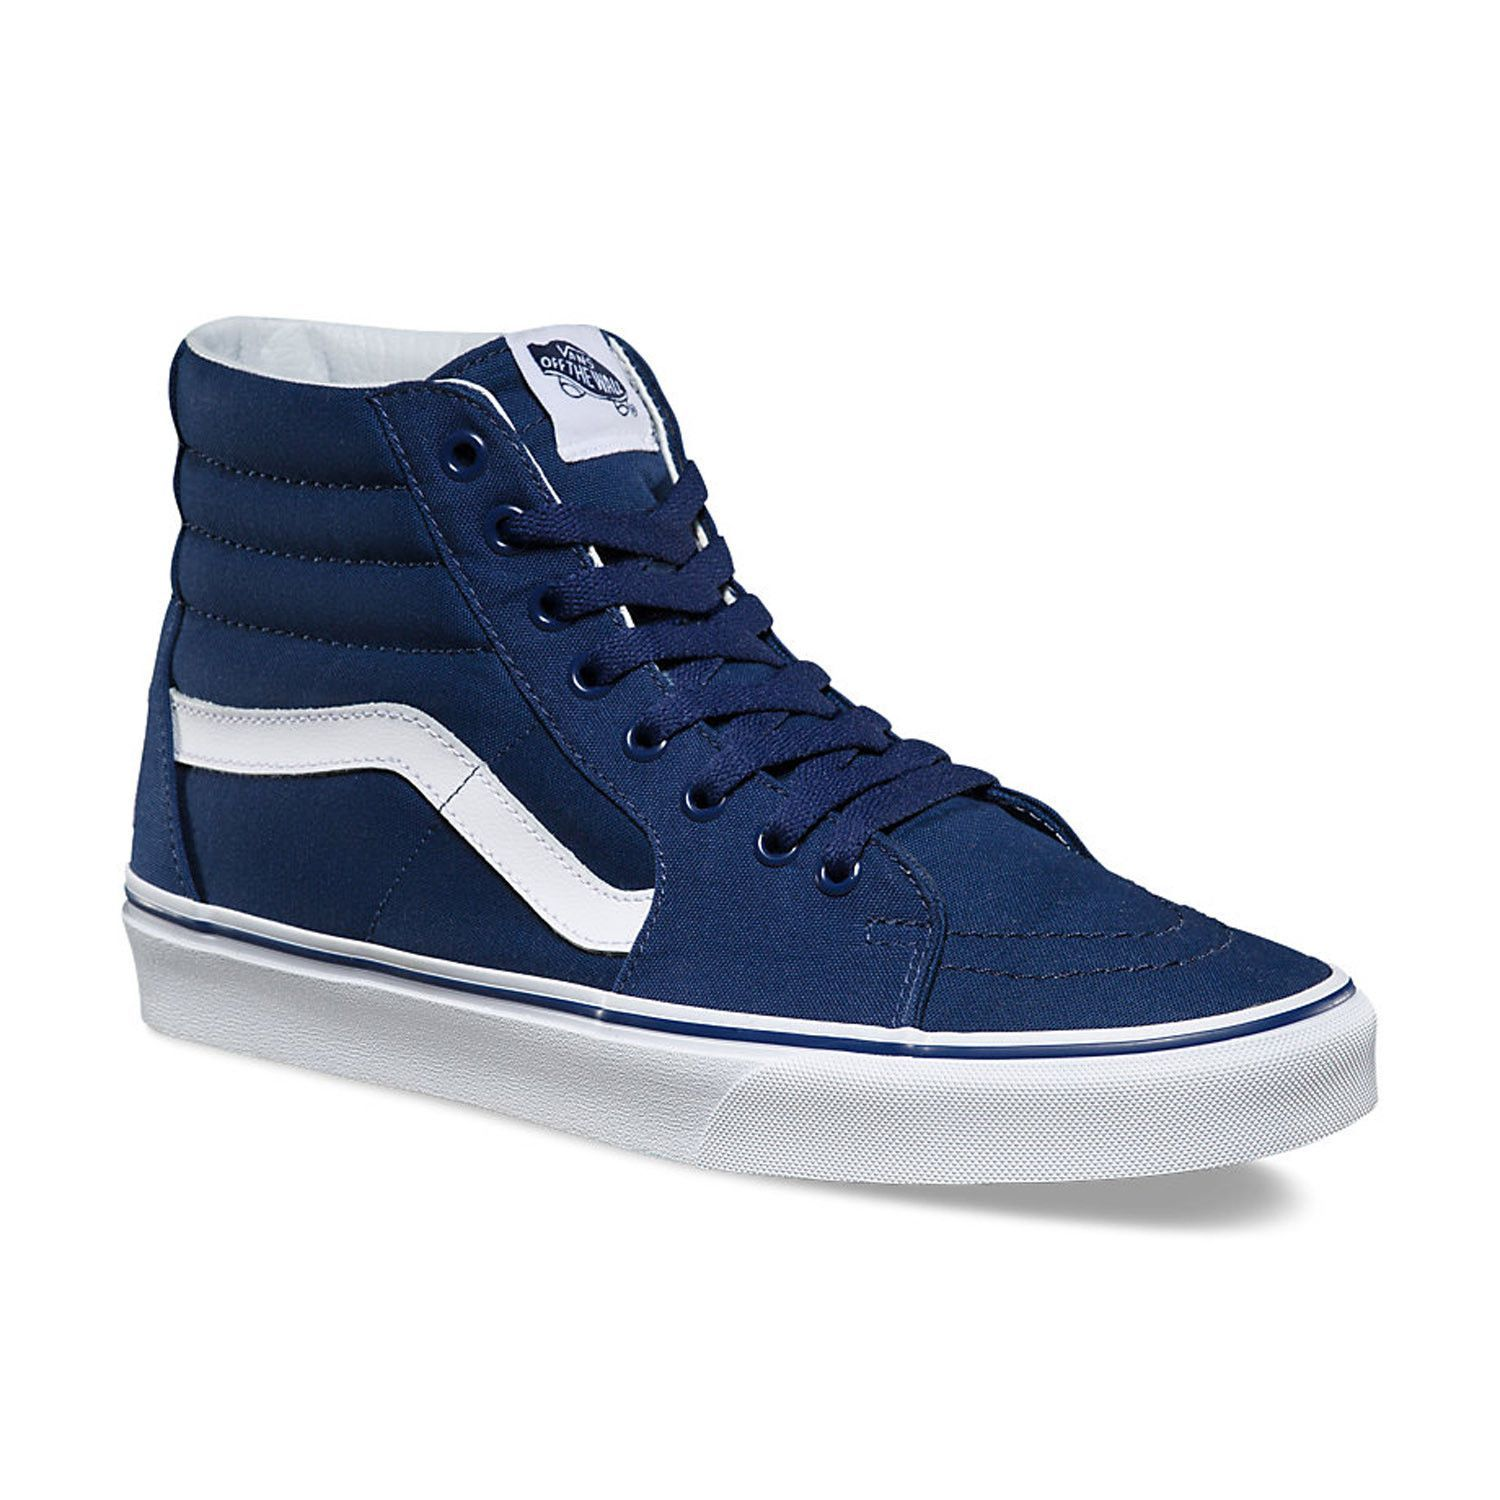 49a3c68a5b VANS MLB Sk8-Hi Men | New York Yankees / Navy (8GEKU3) | shoes ...